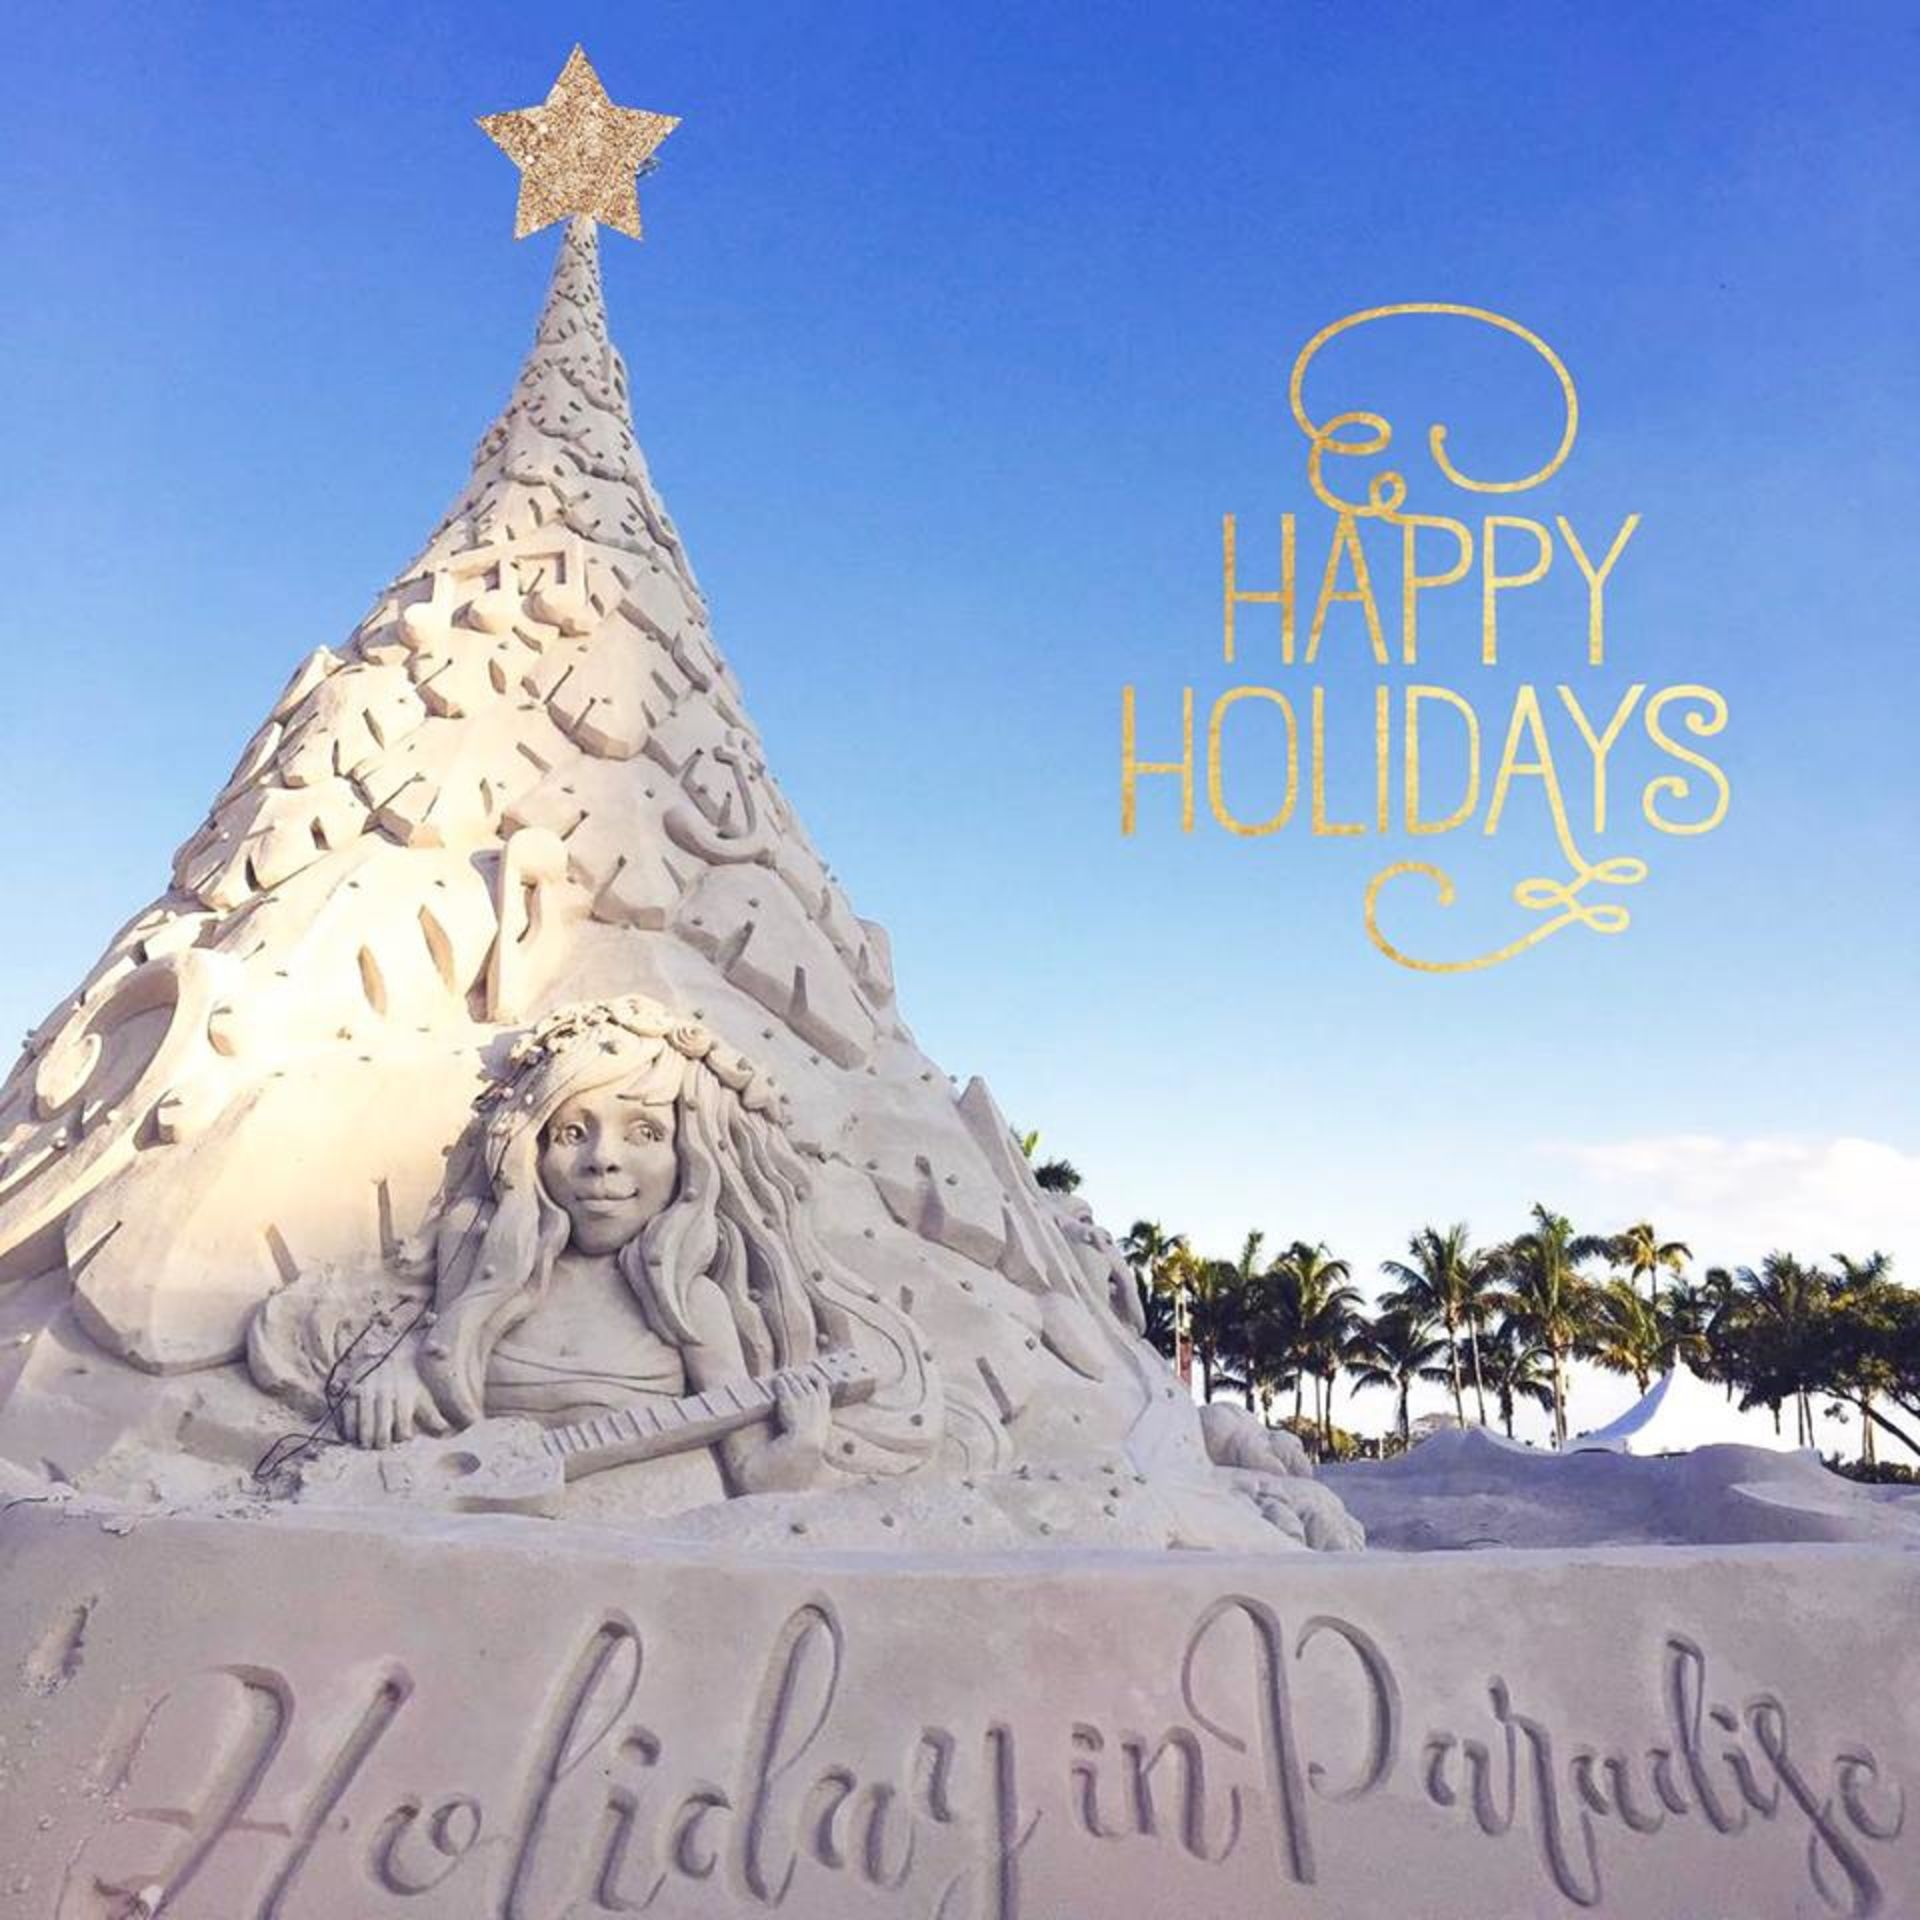 10 BEST HOLIDAY LIGHT DISPLAYS IN PALM BEACH COUNTY